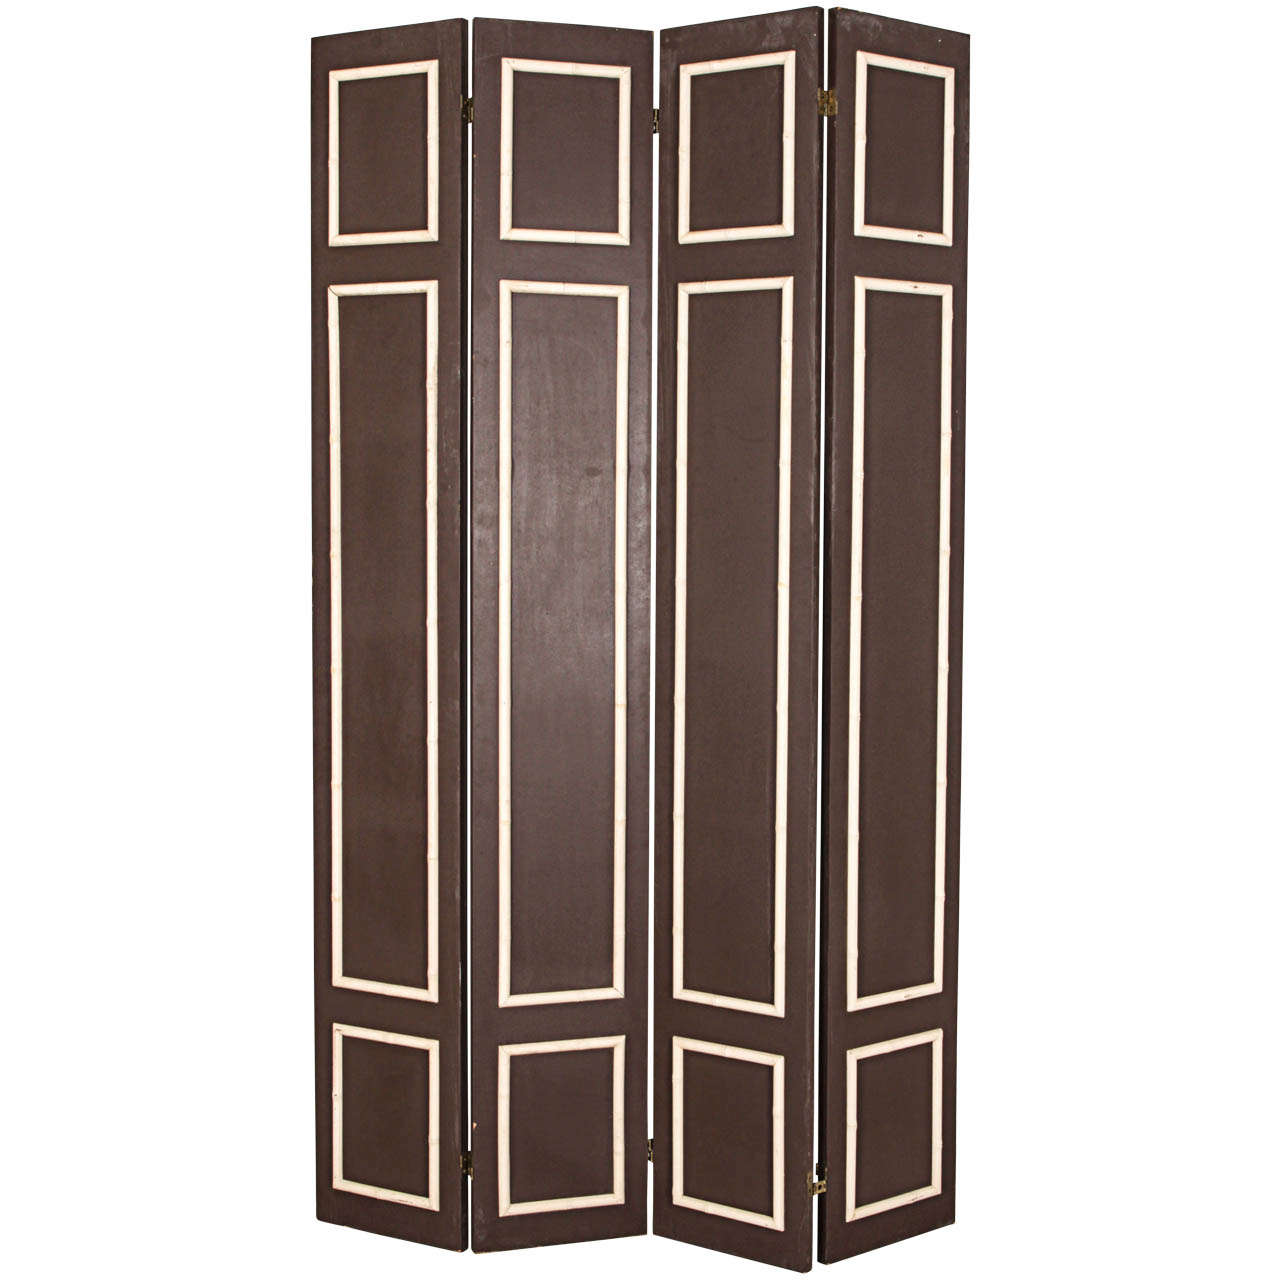 Pair of Hollywood Regency Painted Wood Screens with Faux Bamboo Trim 1